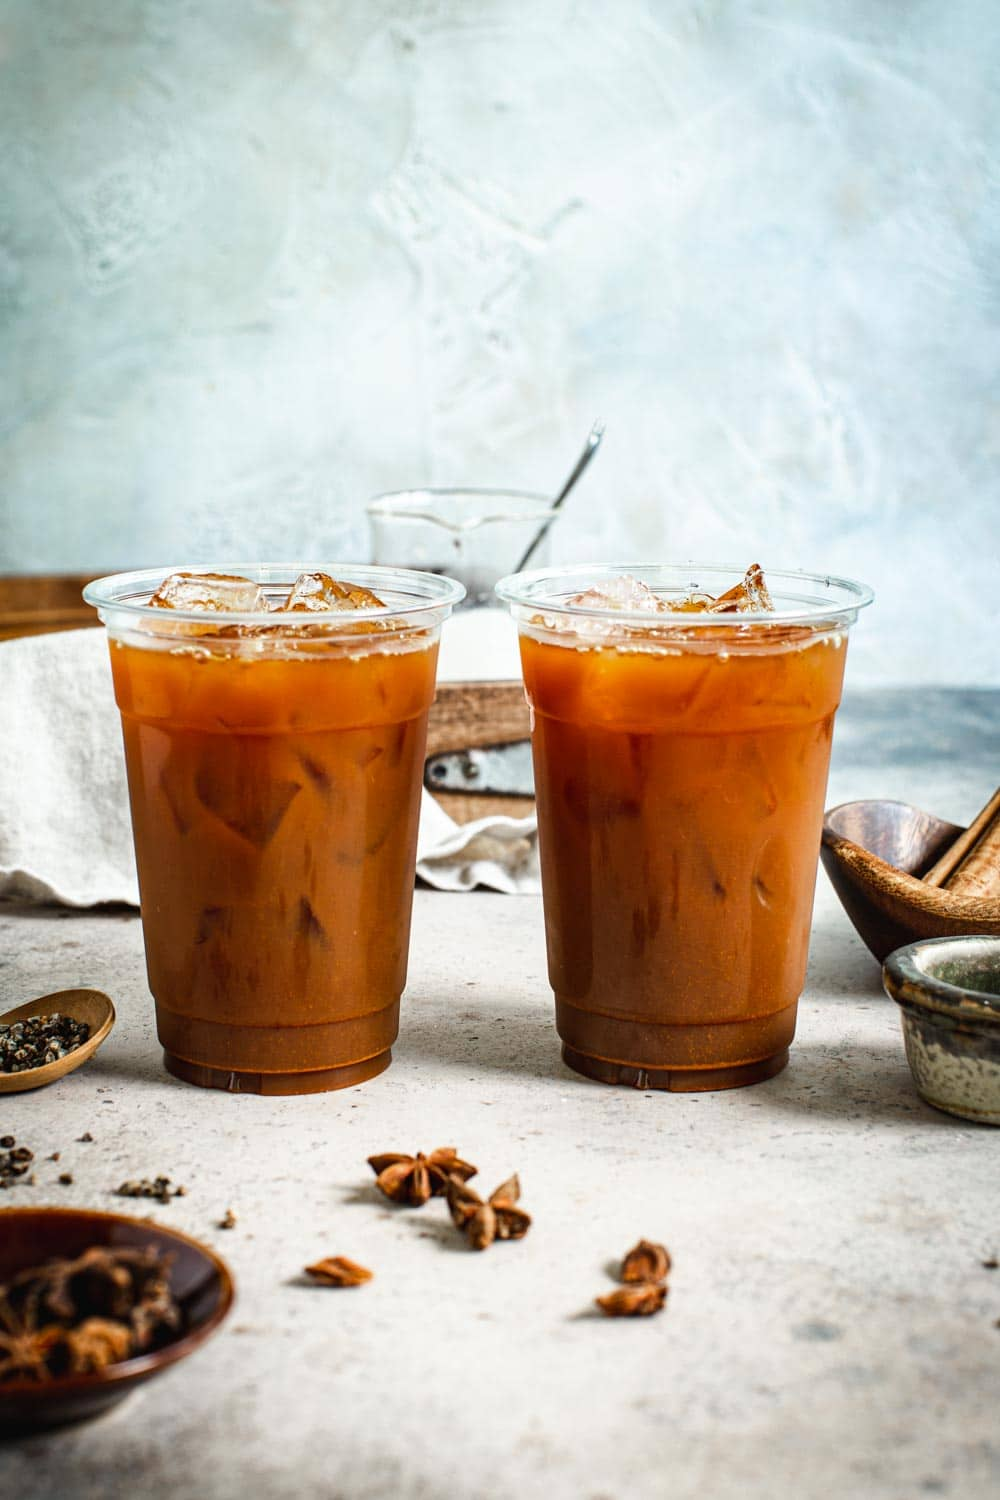 Thai iced tea without the milk in two plastic cups.